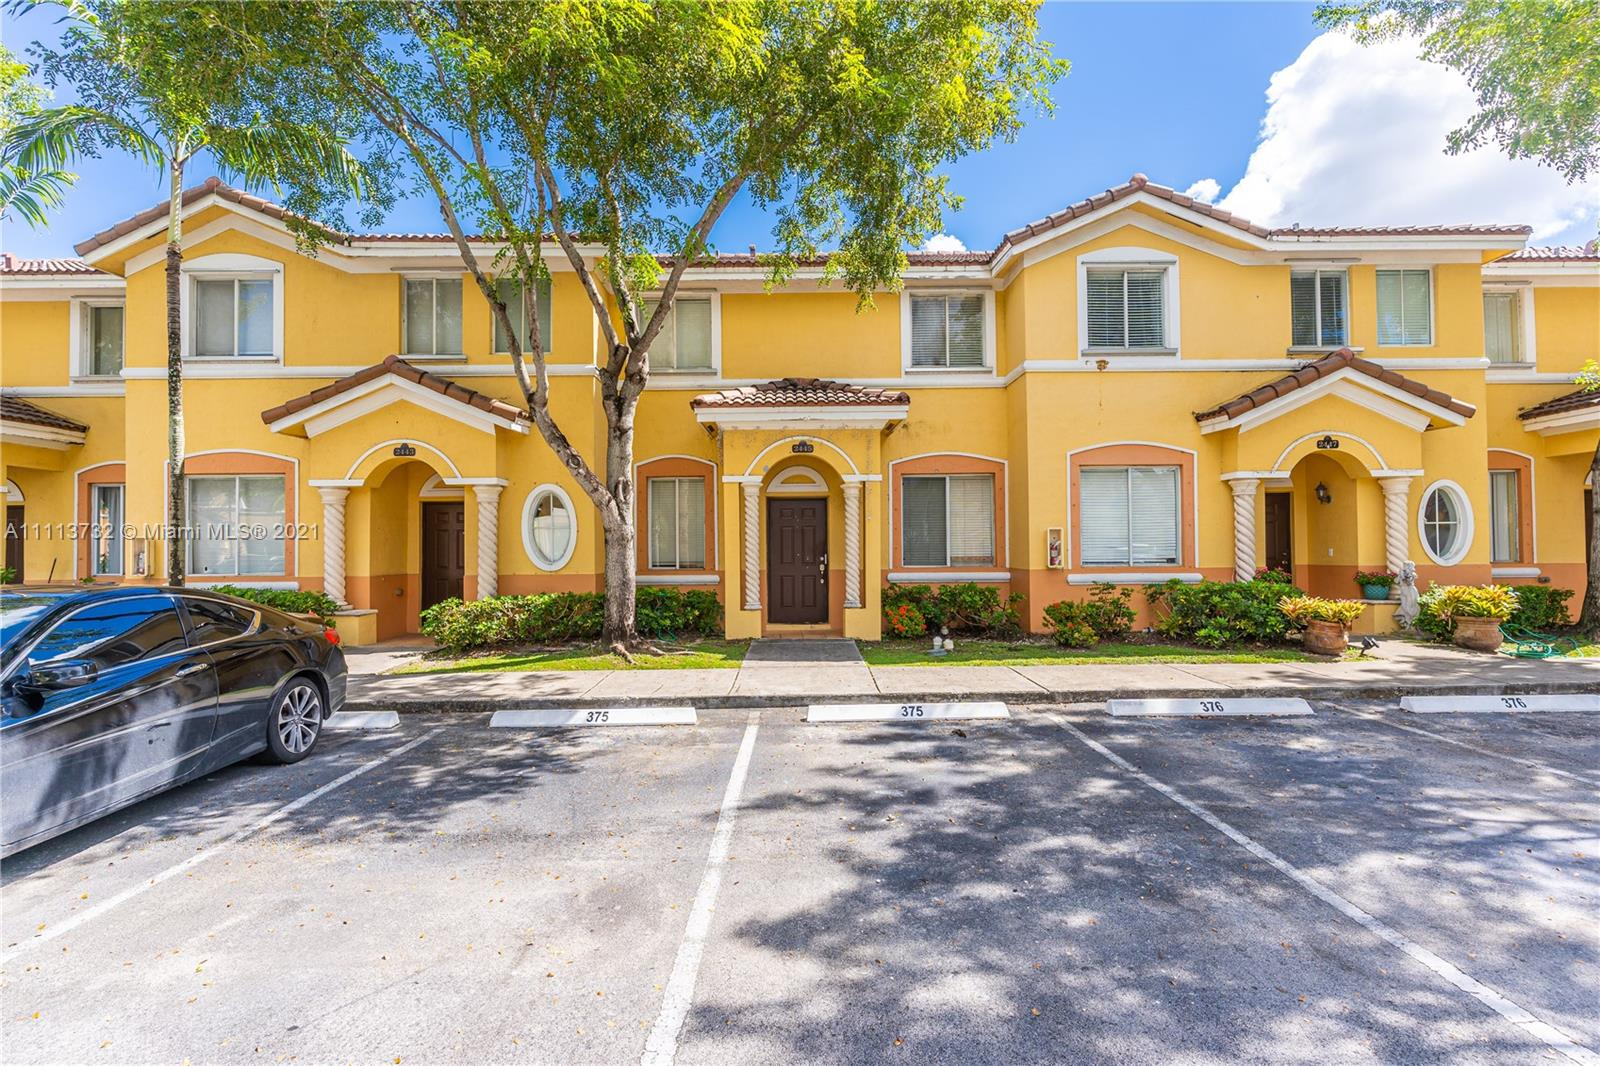 2445 SE 14th Ave #375 For Sale A11113732, FL